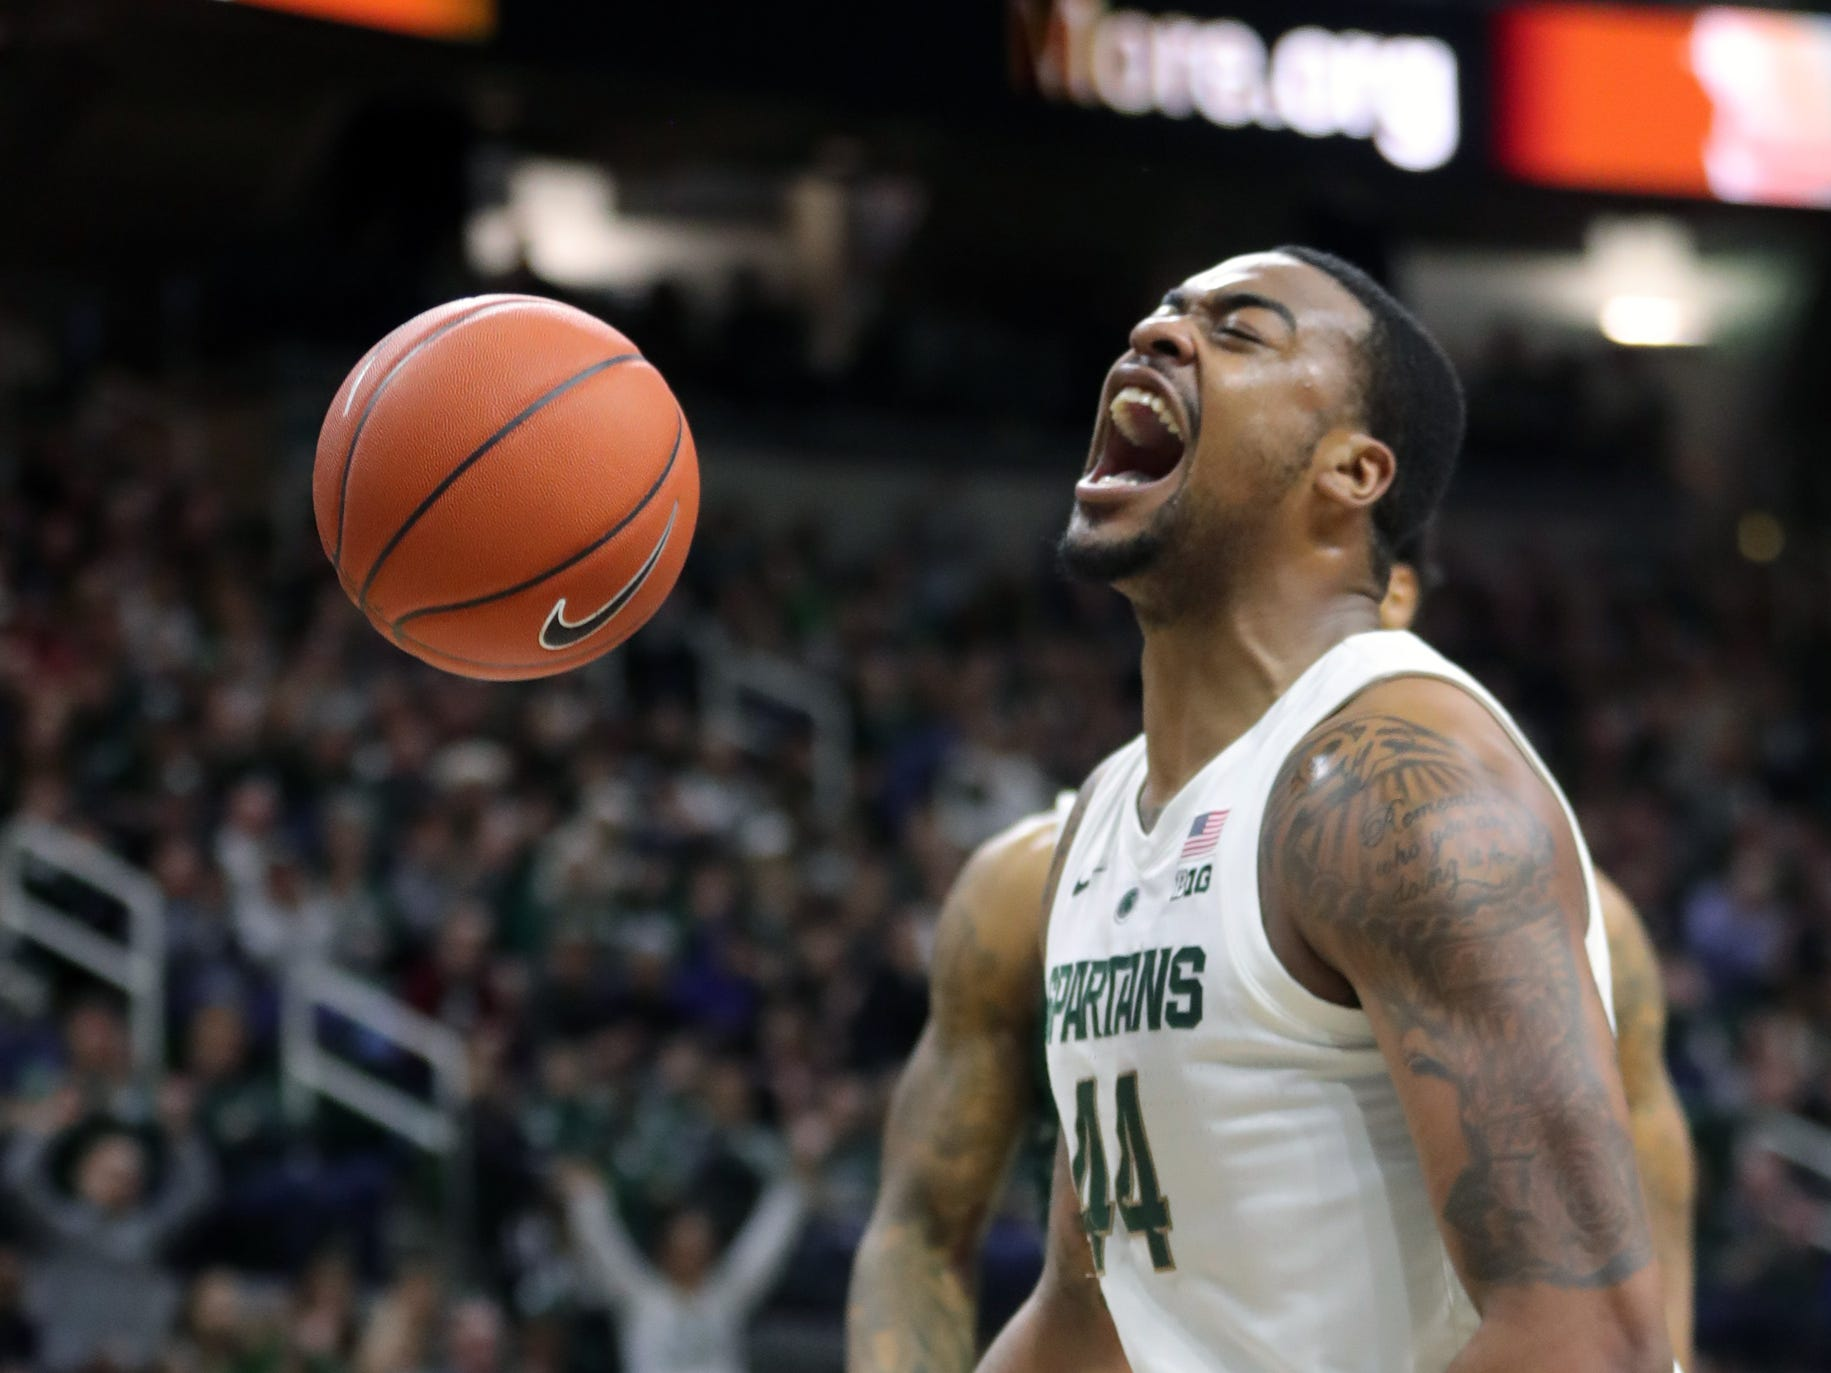 Michigan State forward Nick Ward reacts after scoring against Green Bay in the first half Sunday, Dec. 16, 2018 at the Breslin Center in East Lansing.